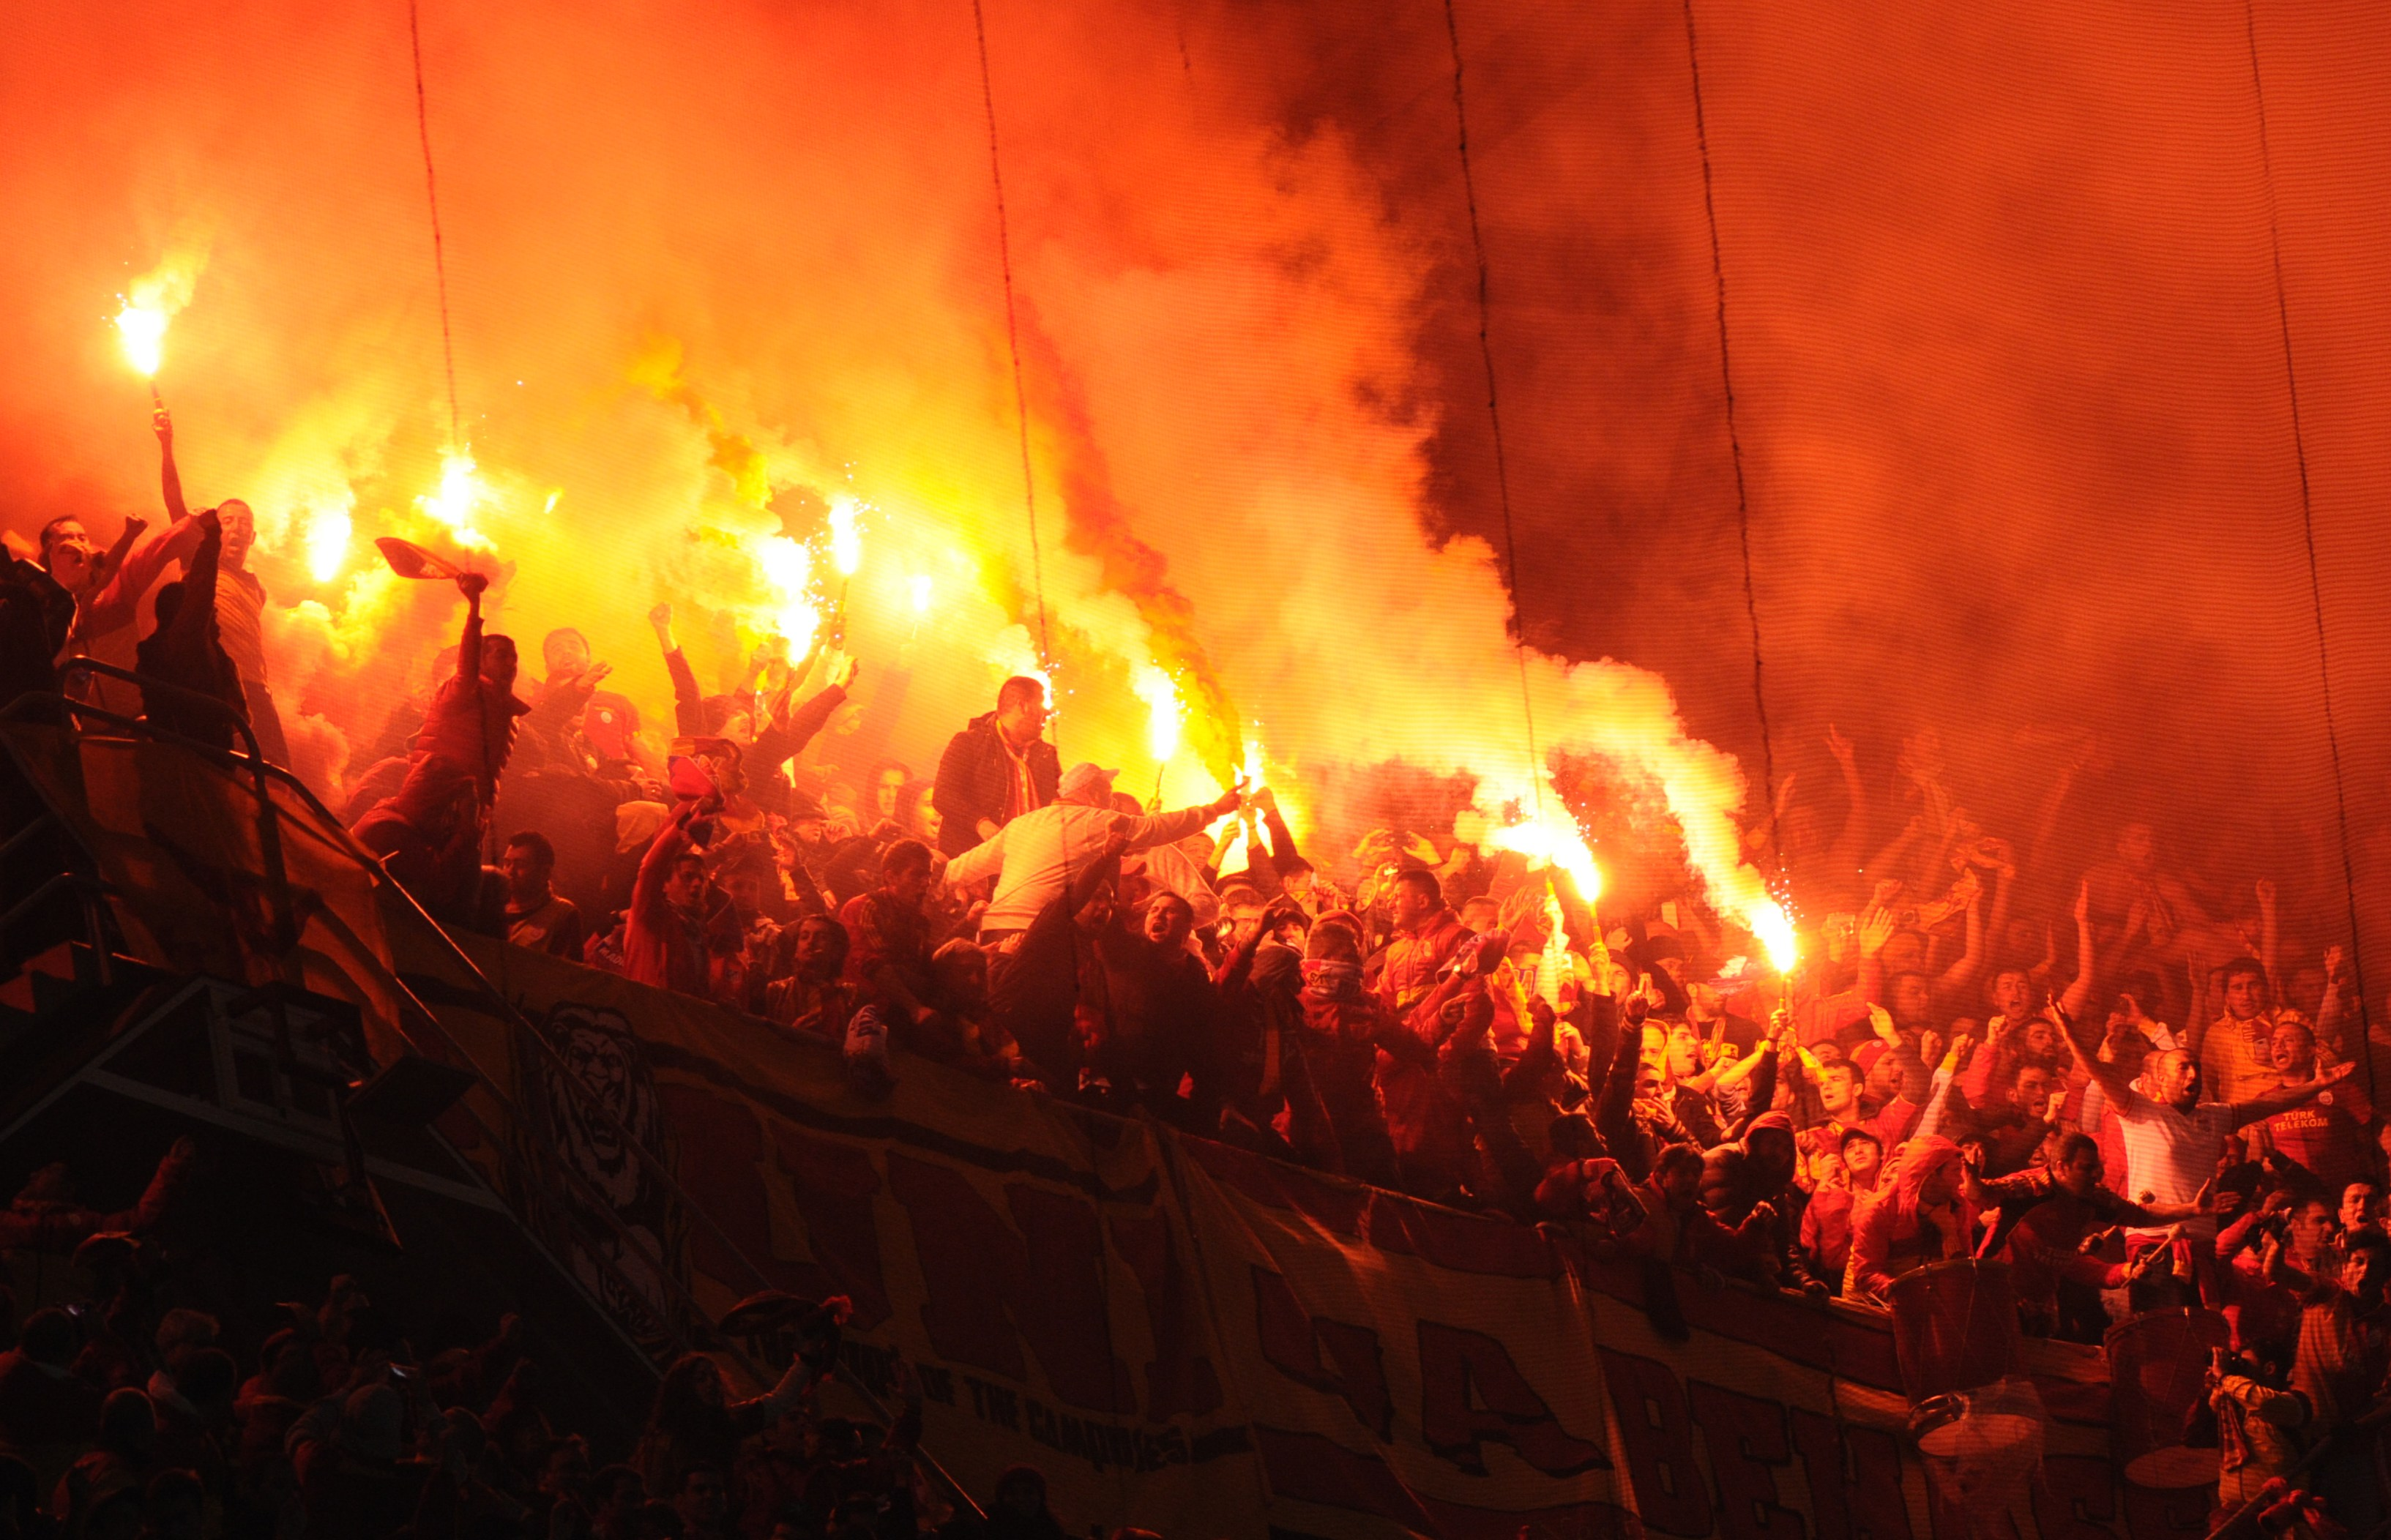 Just as in Germany, pyrotechnics are forbidden in Turkey, but common in all stadia and hardly punished.